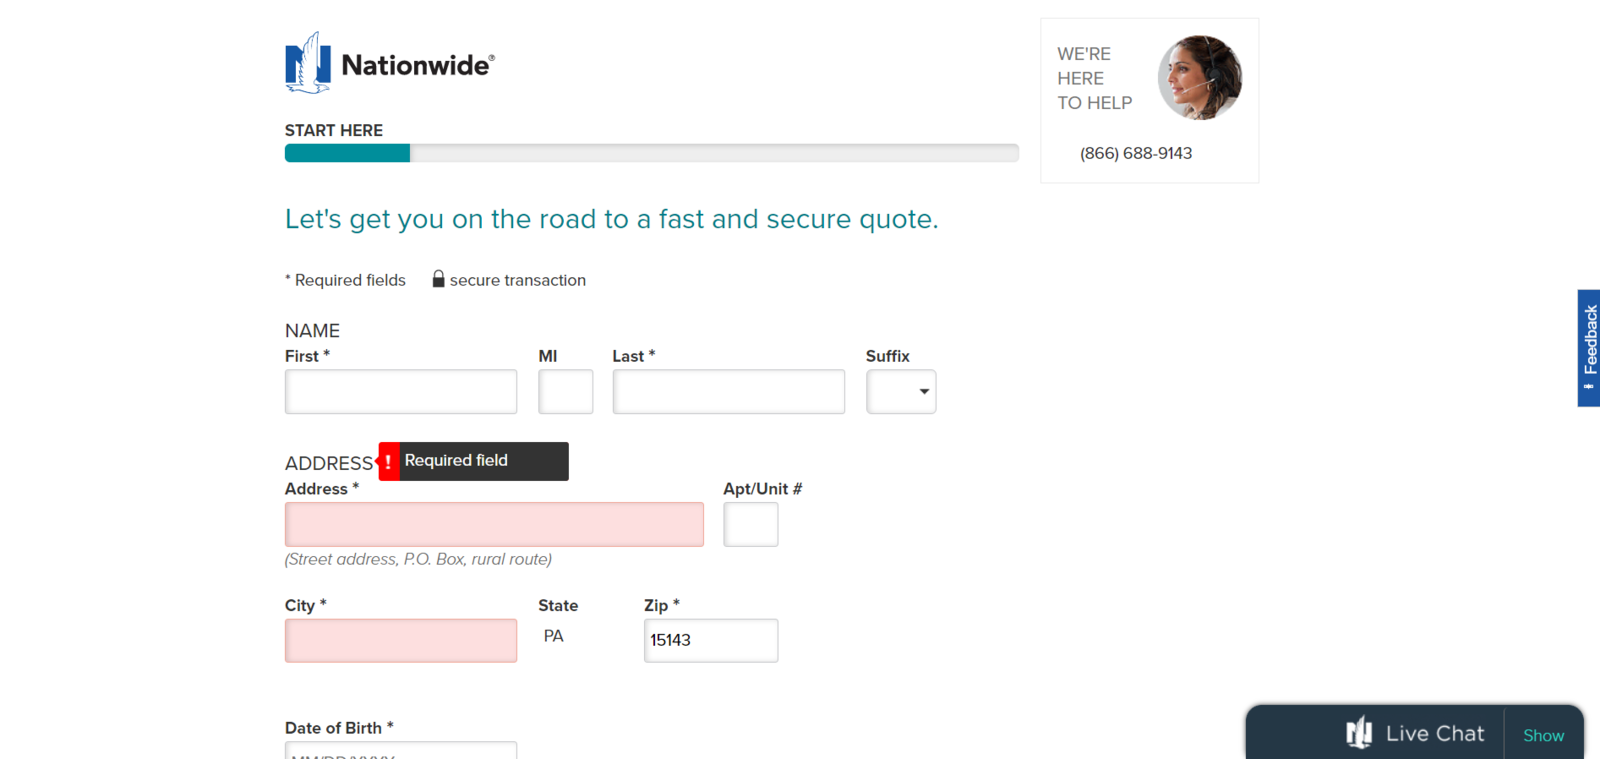 Nationwide website online quote personal information screen